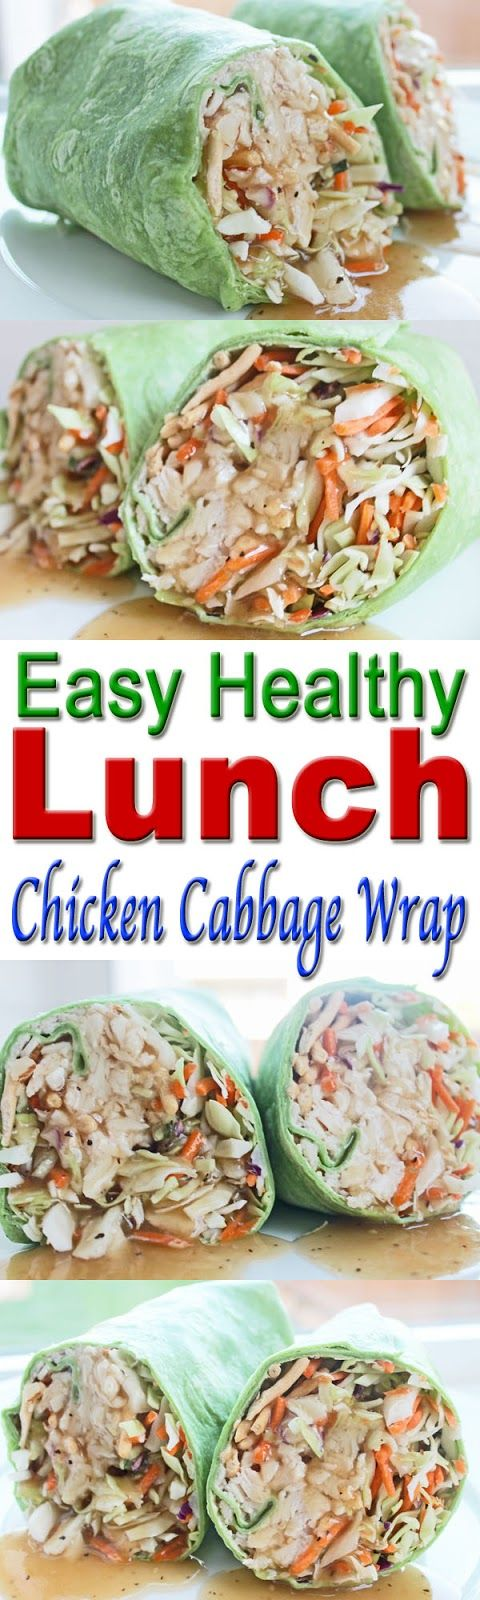 healthiest lunch meat for weight loss